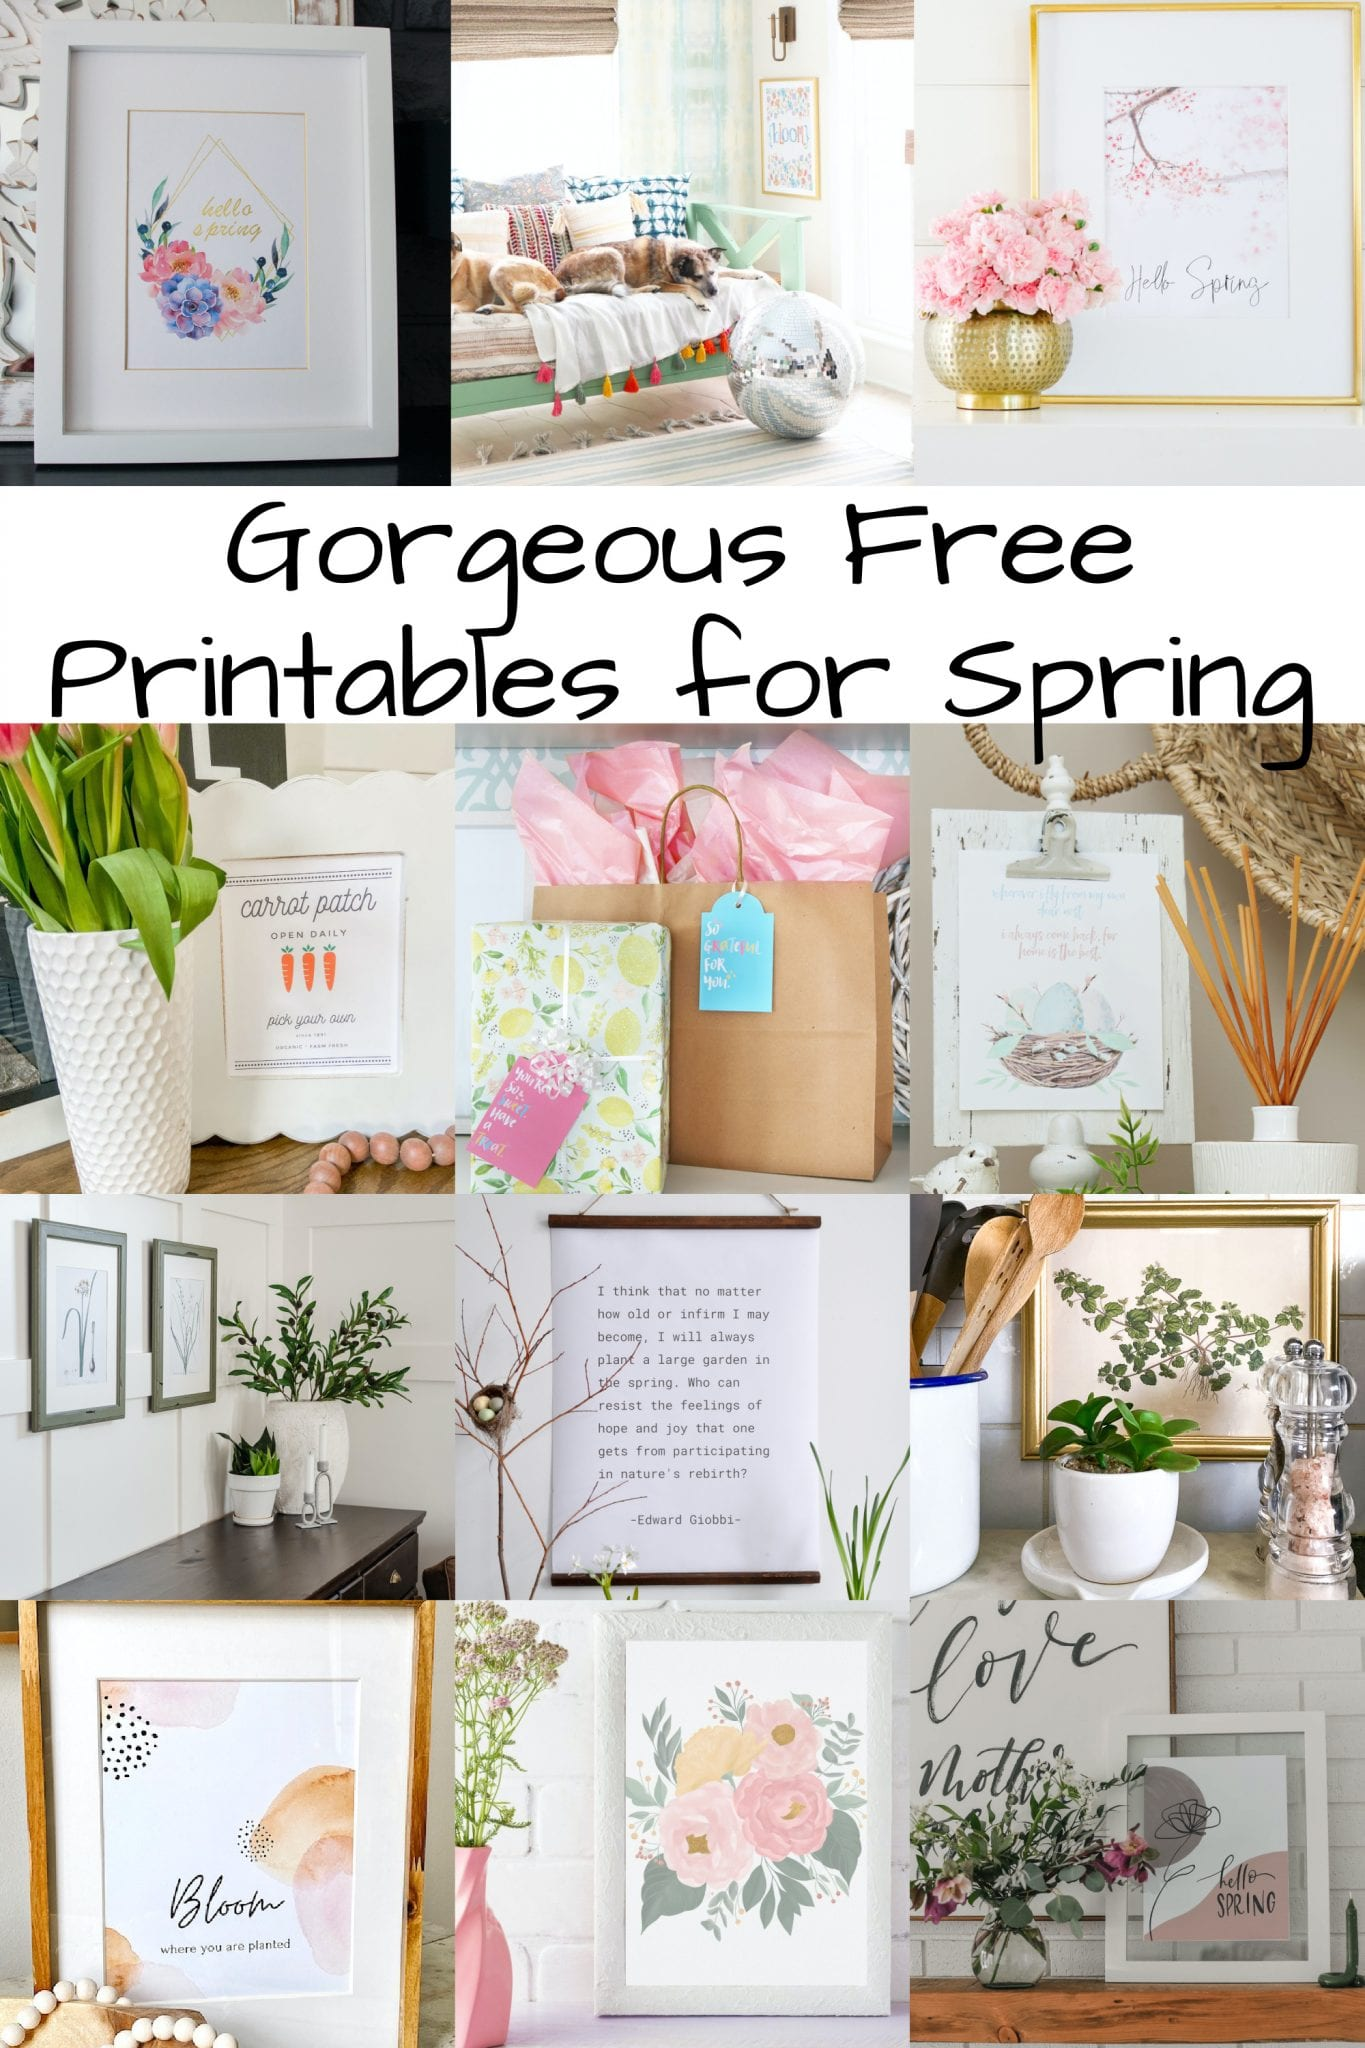 free spring printables for your home via @modernglamhome